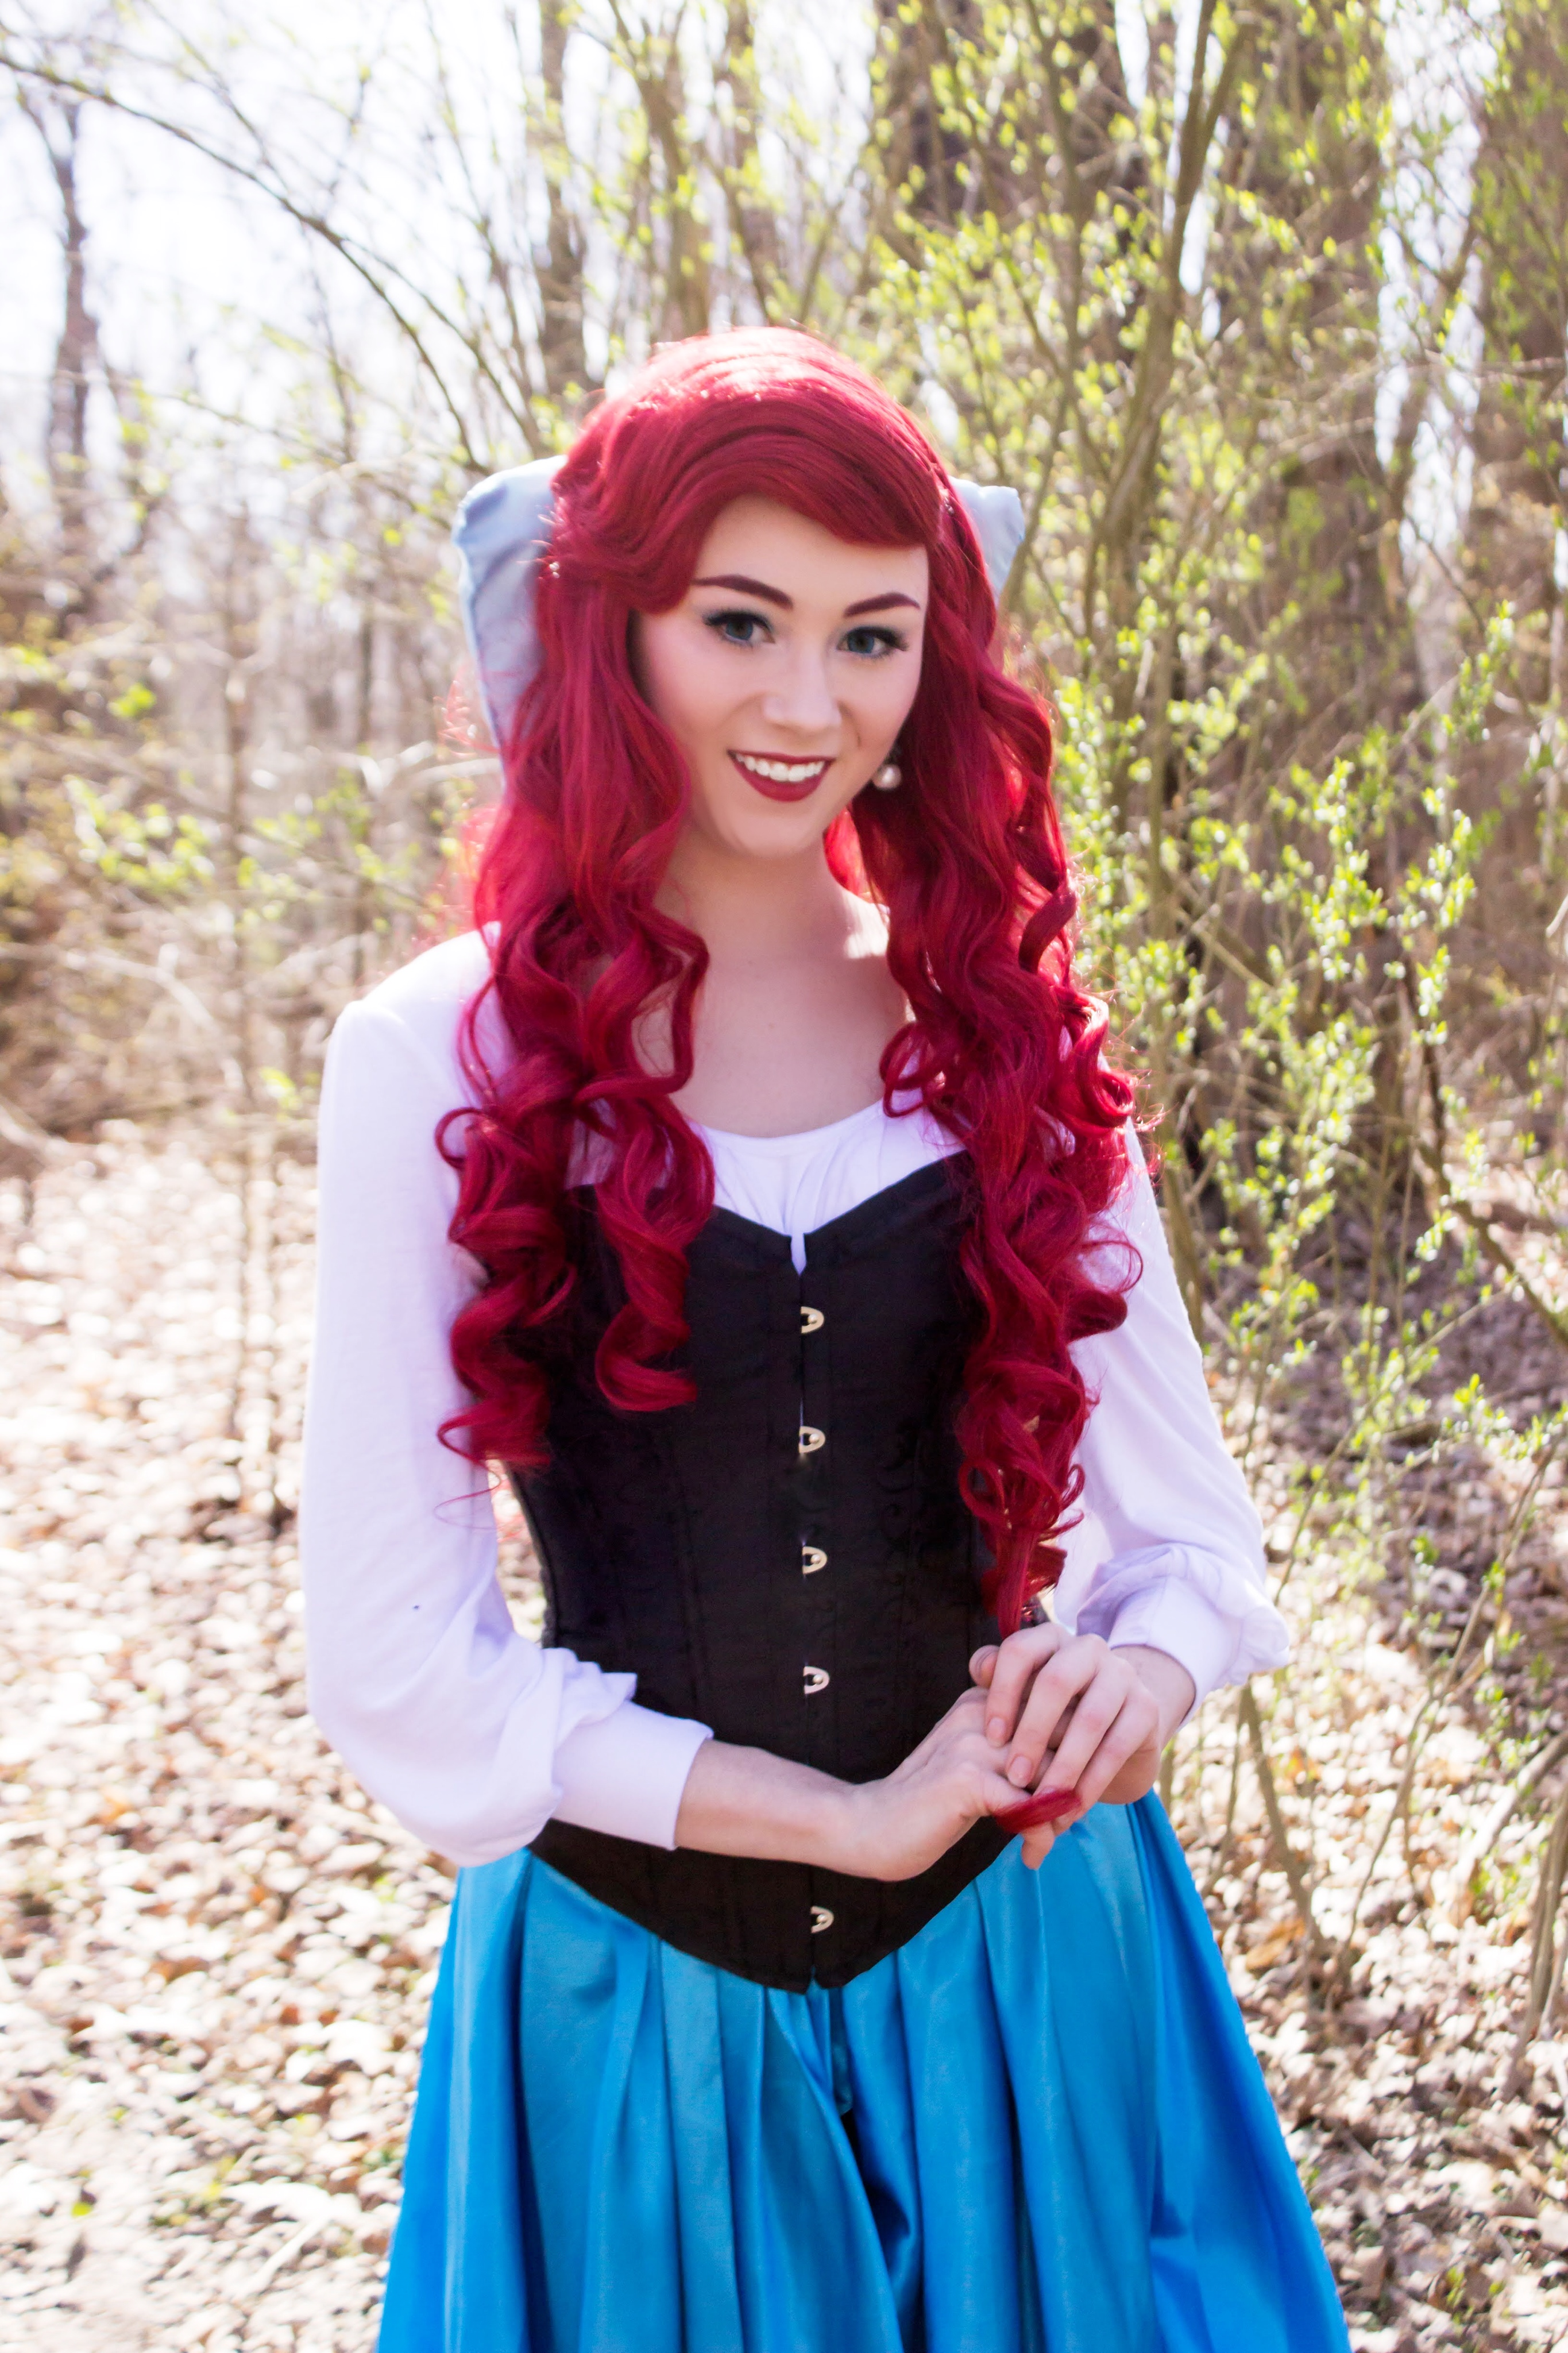 Little Mermaid - Land Outfit